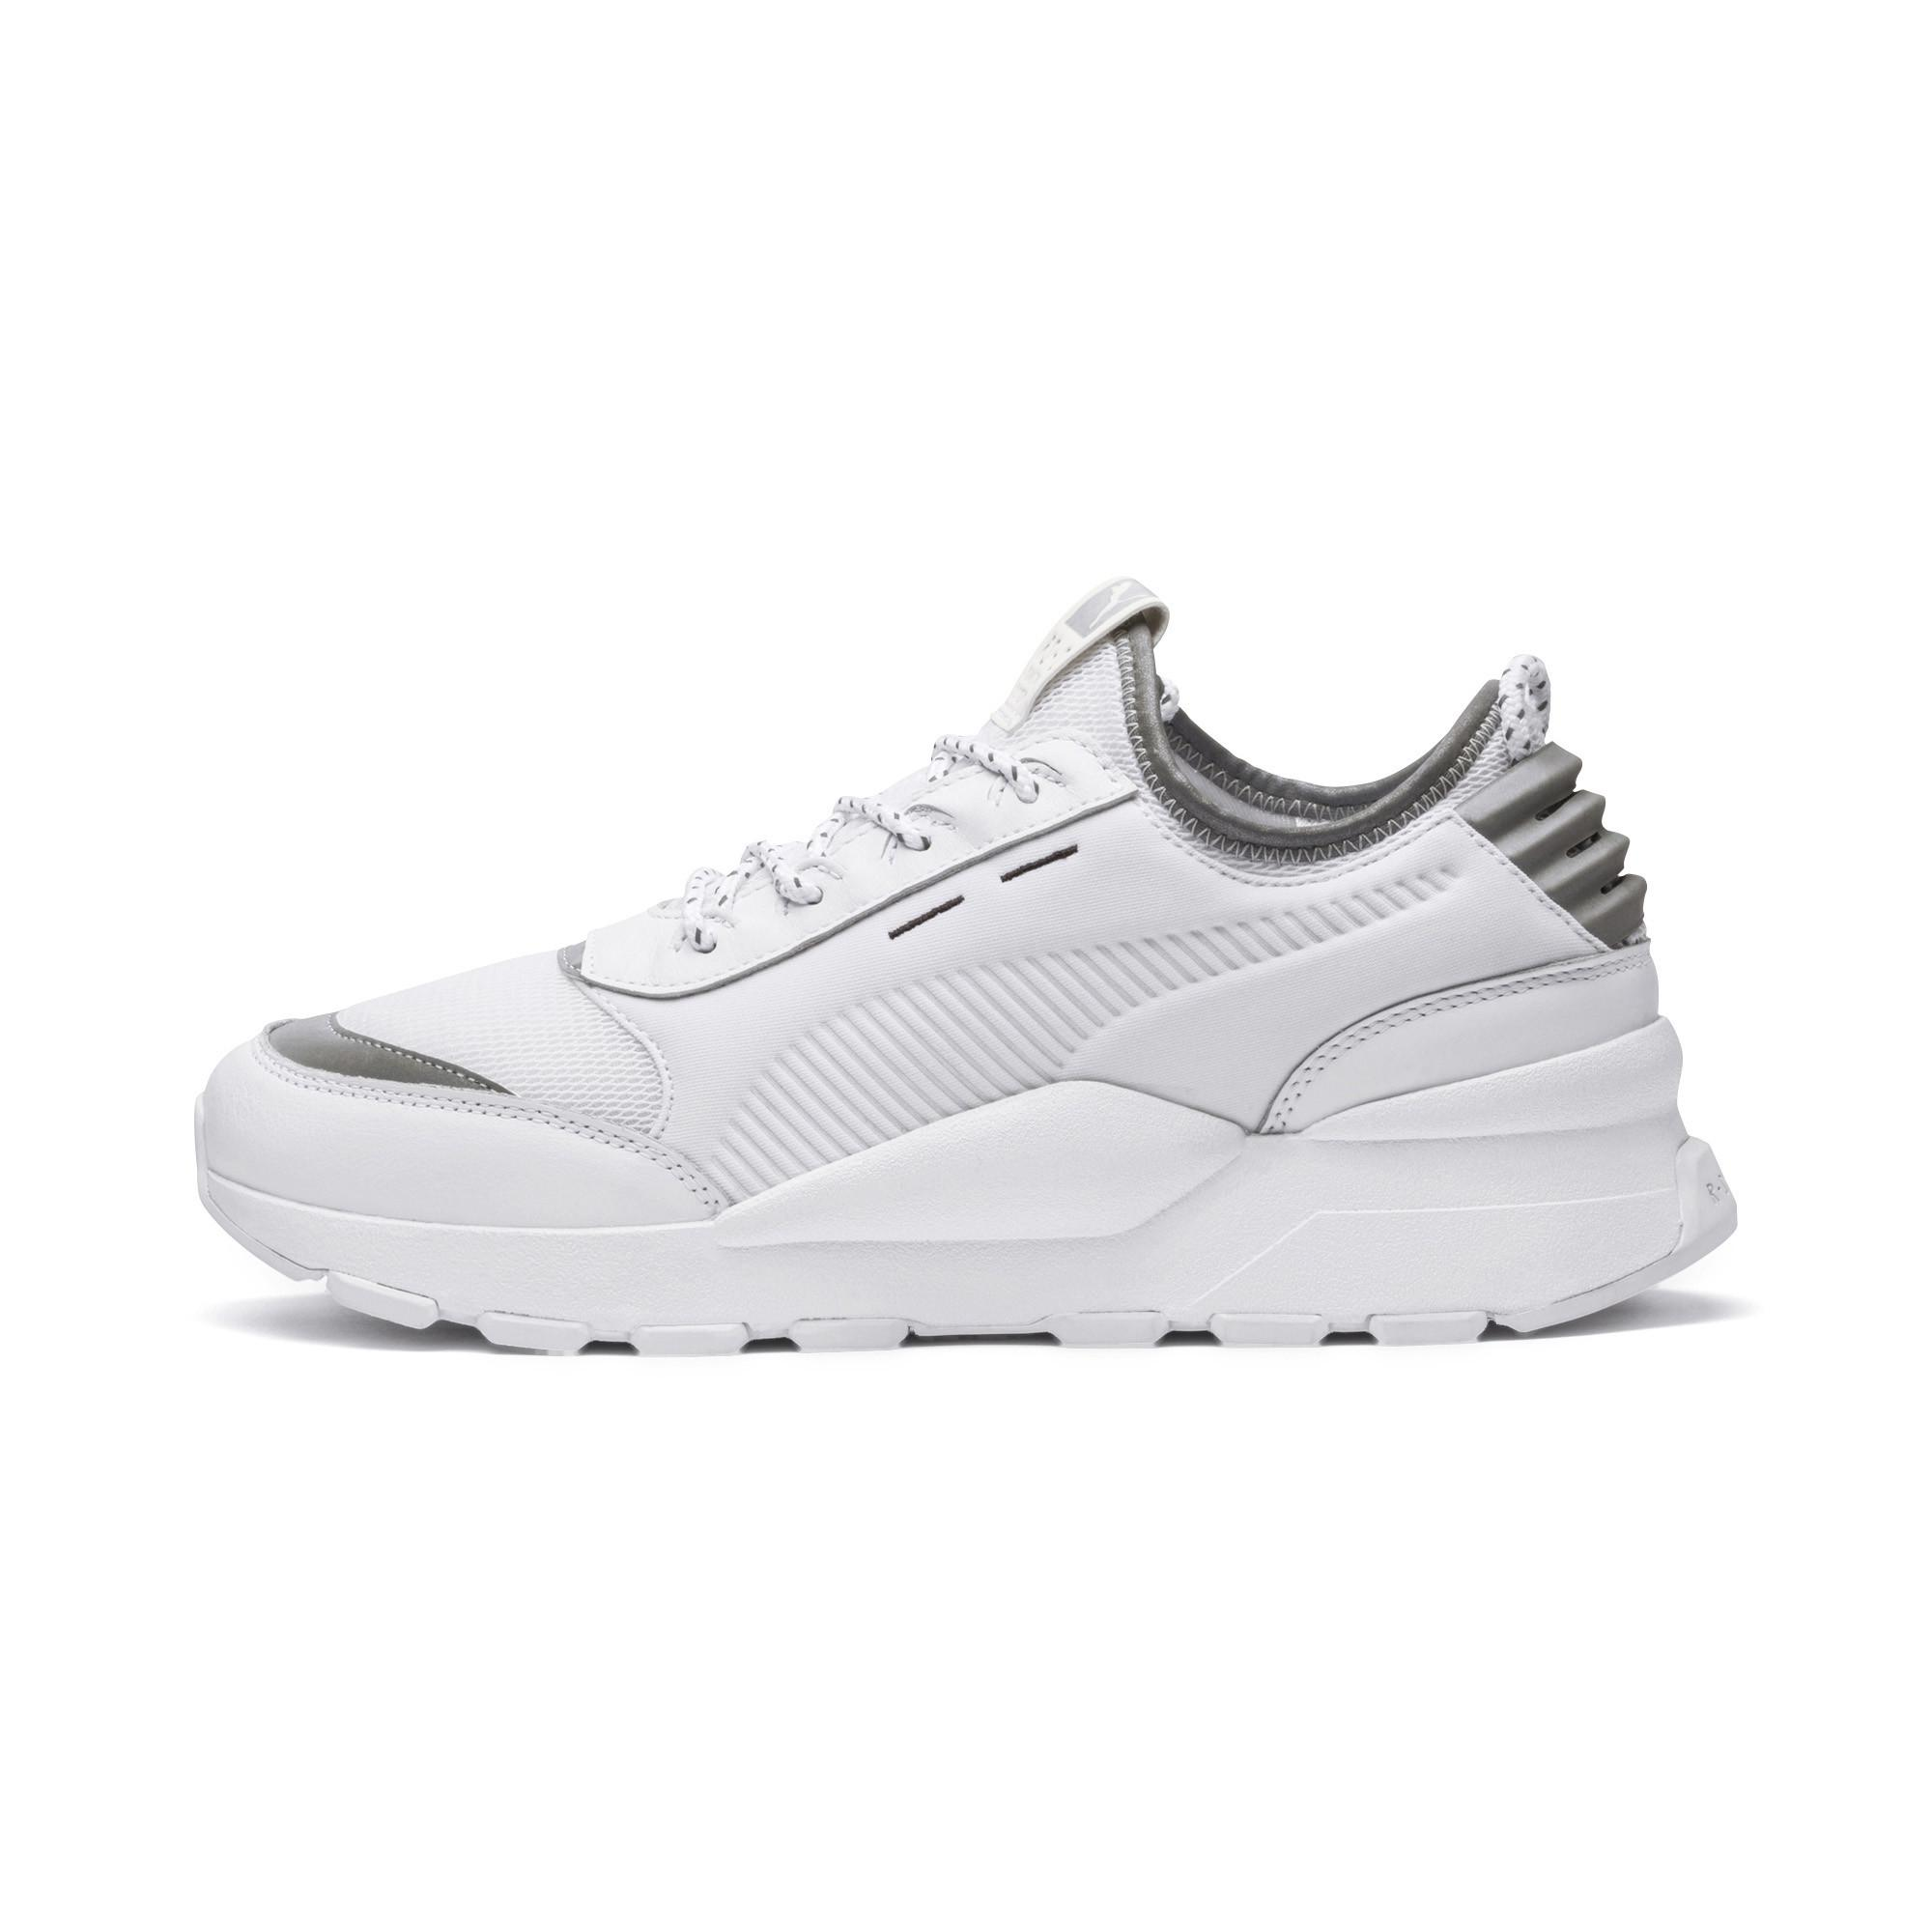 1253d2641a34 Lyst - PUMA Rs-0 Optic Pop Sneakers in White for Men